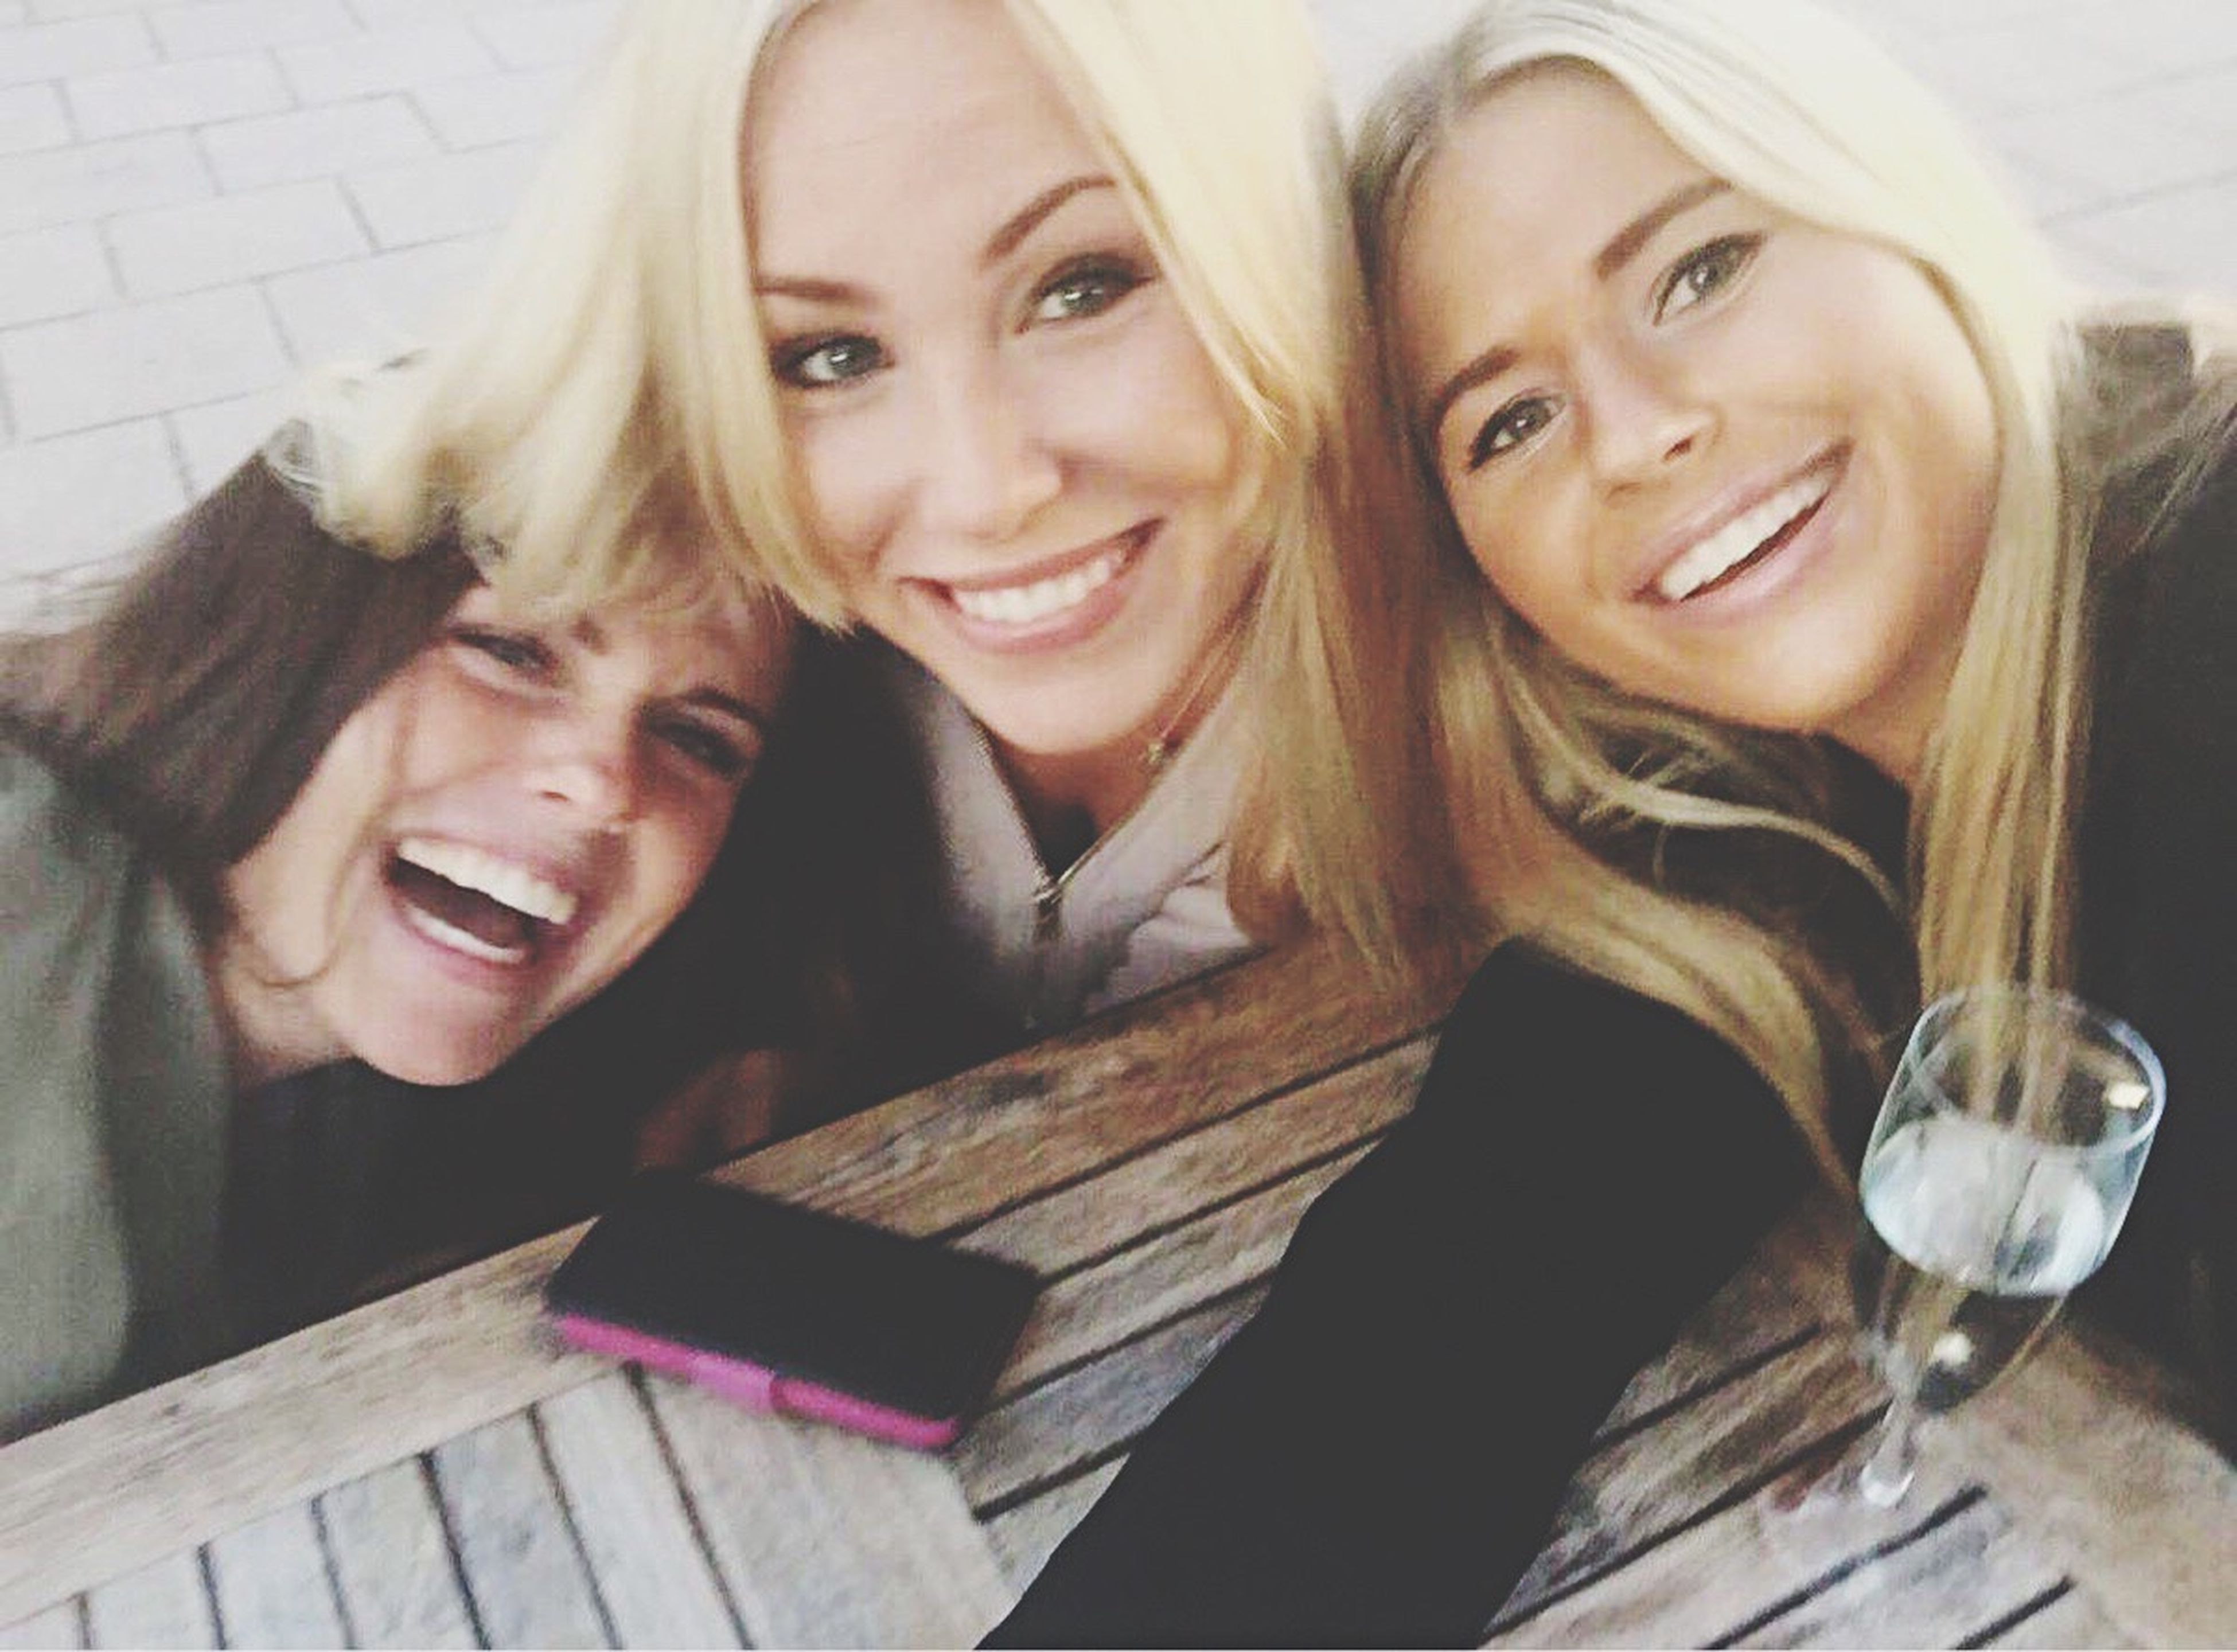 looking at camera, portrait, smiling, happiness, togetherness, toothy smile, real people, cheerful, headshot, two people, bonding, blond hair, enjoyment, friendship, young women, leisure activity, women, young adult, day, indoors, close-up, people, adult